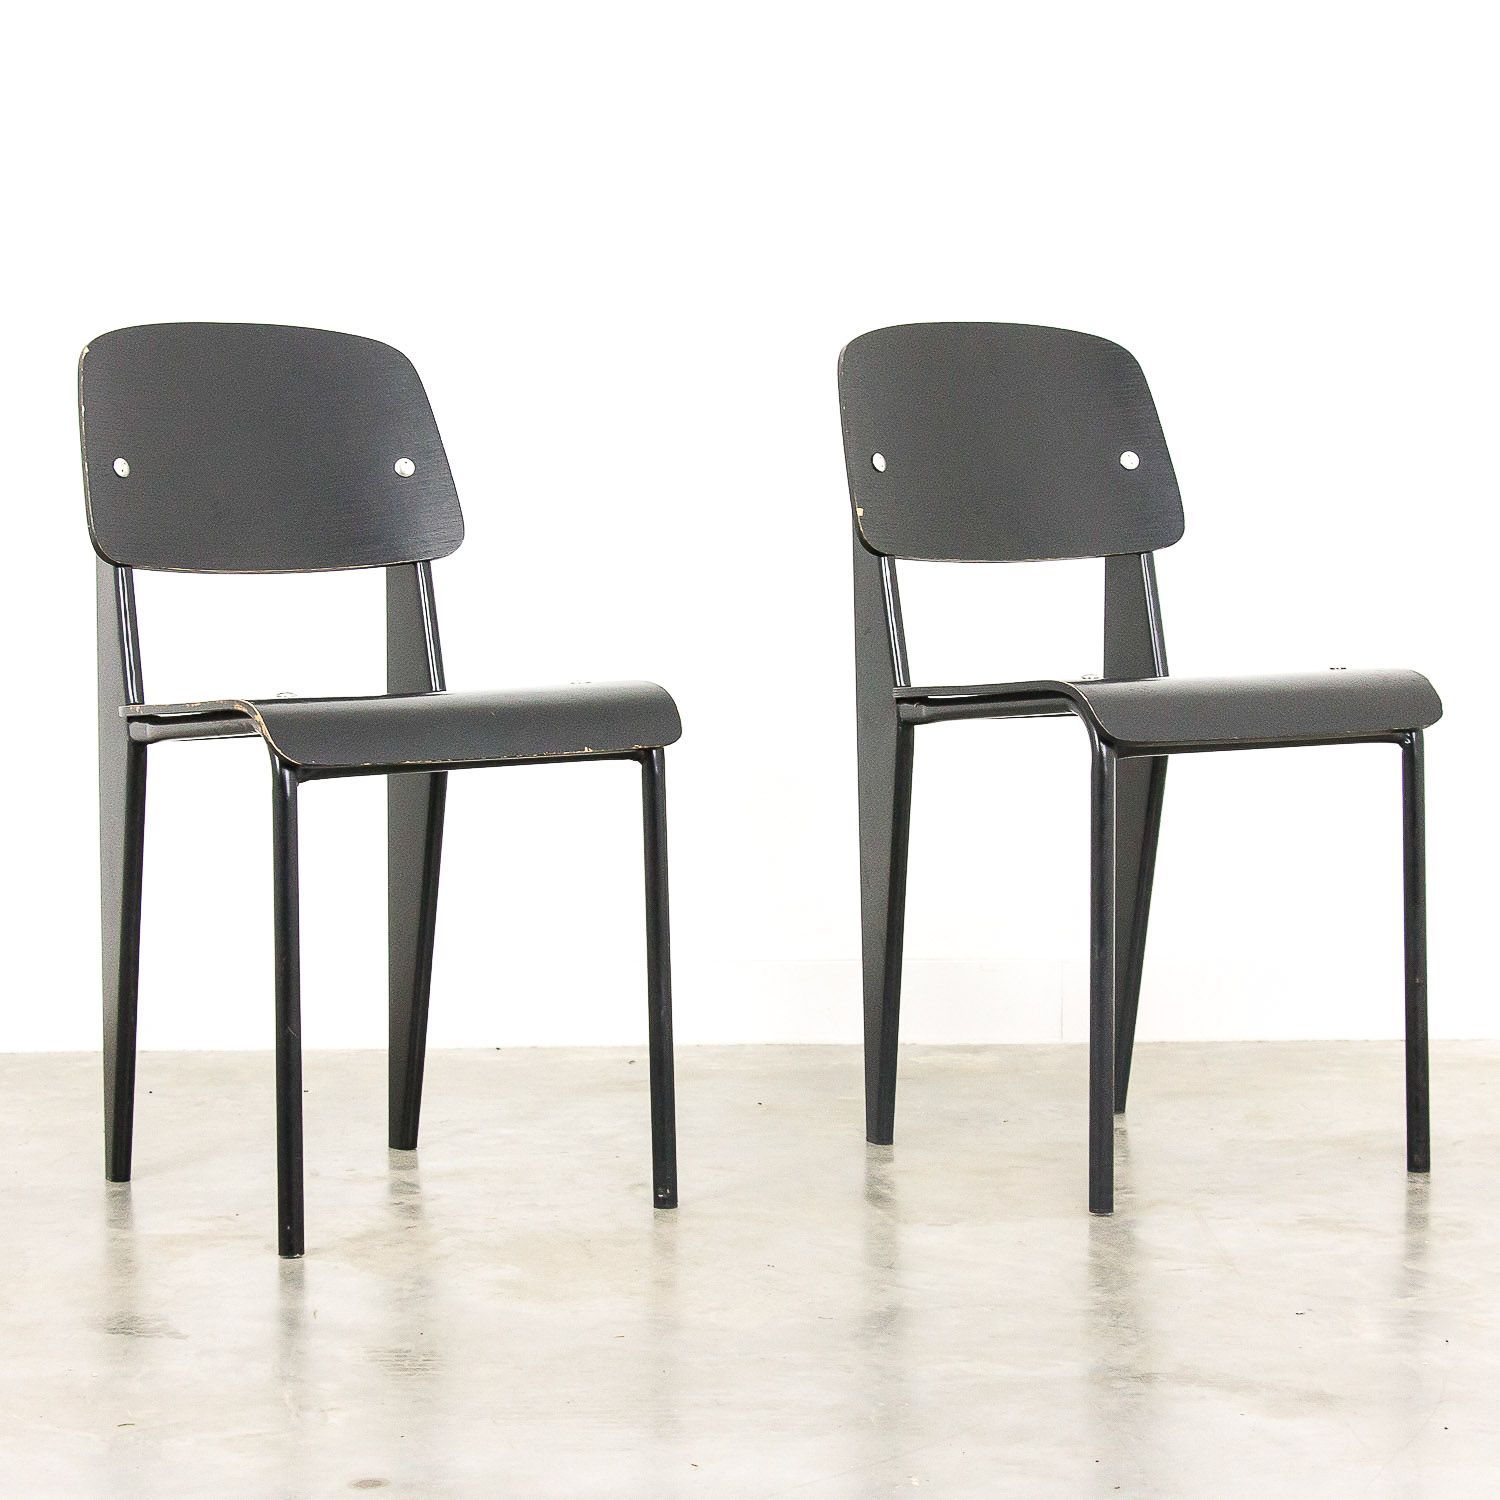 Jean Prouvé style standard chair by Vitra set of 2